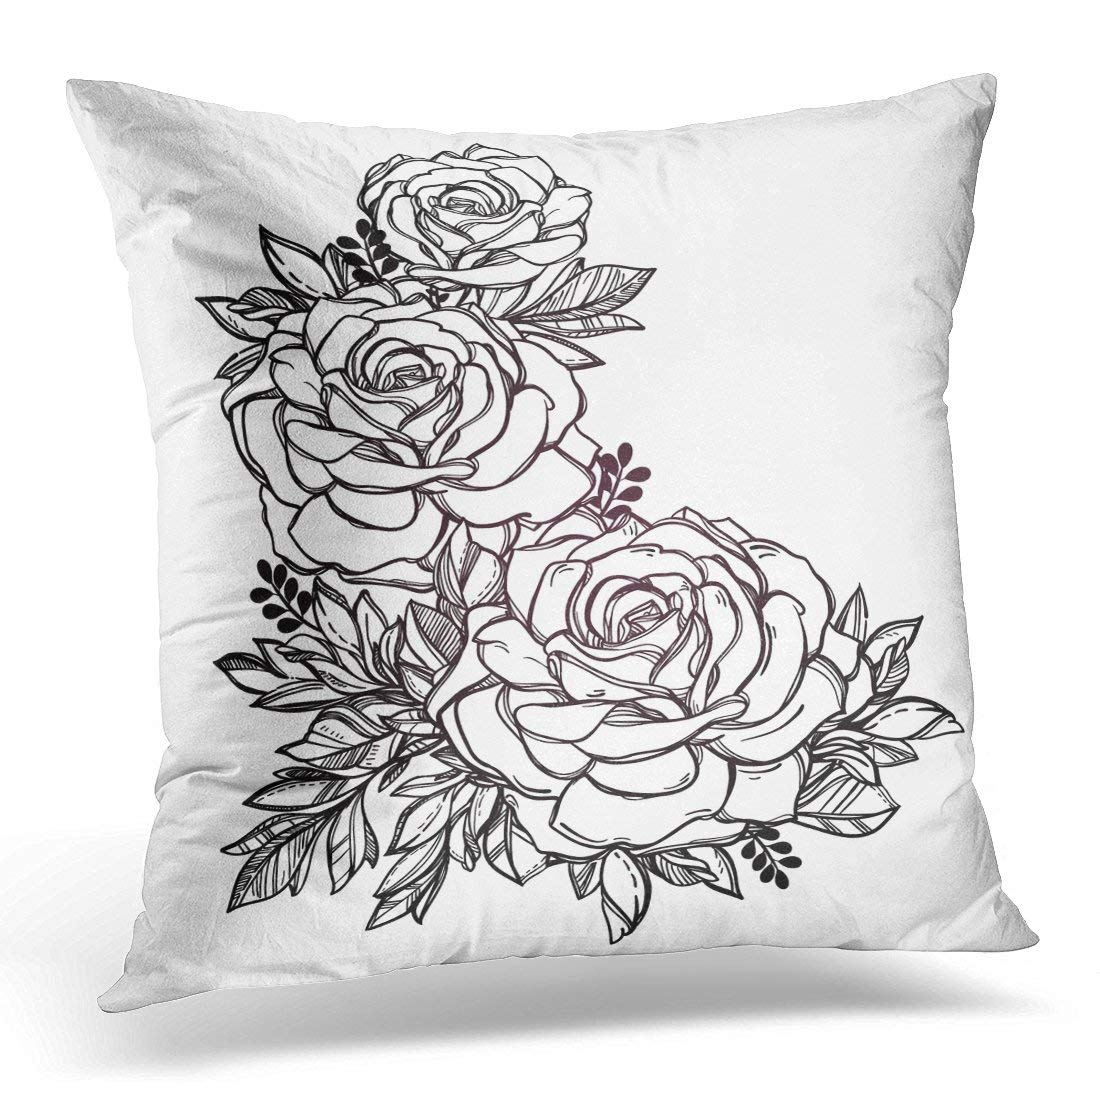 Arhome Vintage Floral Highly Detailed Rose Flower Stem With Roses And Leaves Victorian Tattoo Bouquet Pillow Case Pillow Cover 20x20 Inch Walmart Com Walmart Com